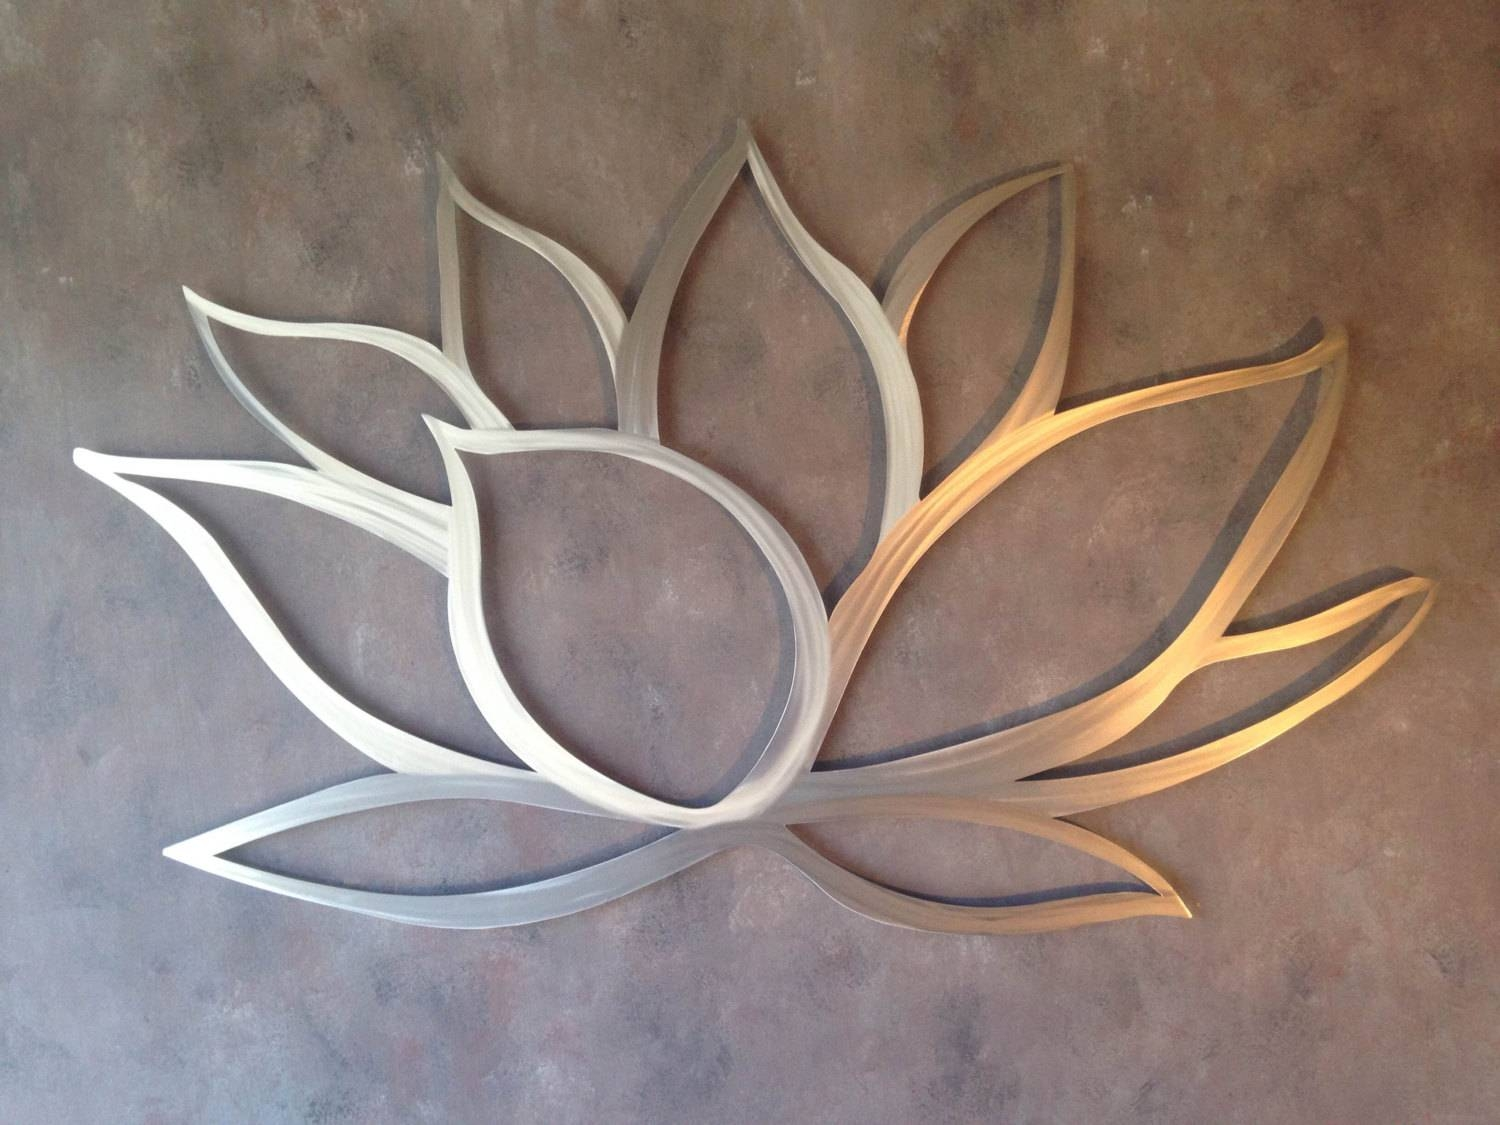 Metal Feng Shui Element Your Home Office Wall Art – Dma Homes | #29247 With Most Recently Released Elements Metal Wall Art (Gallery 12 of 20)